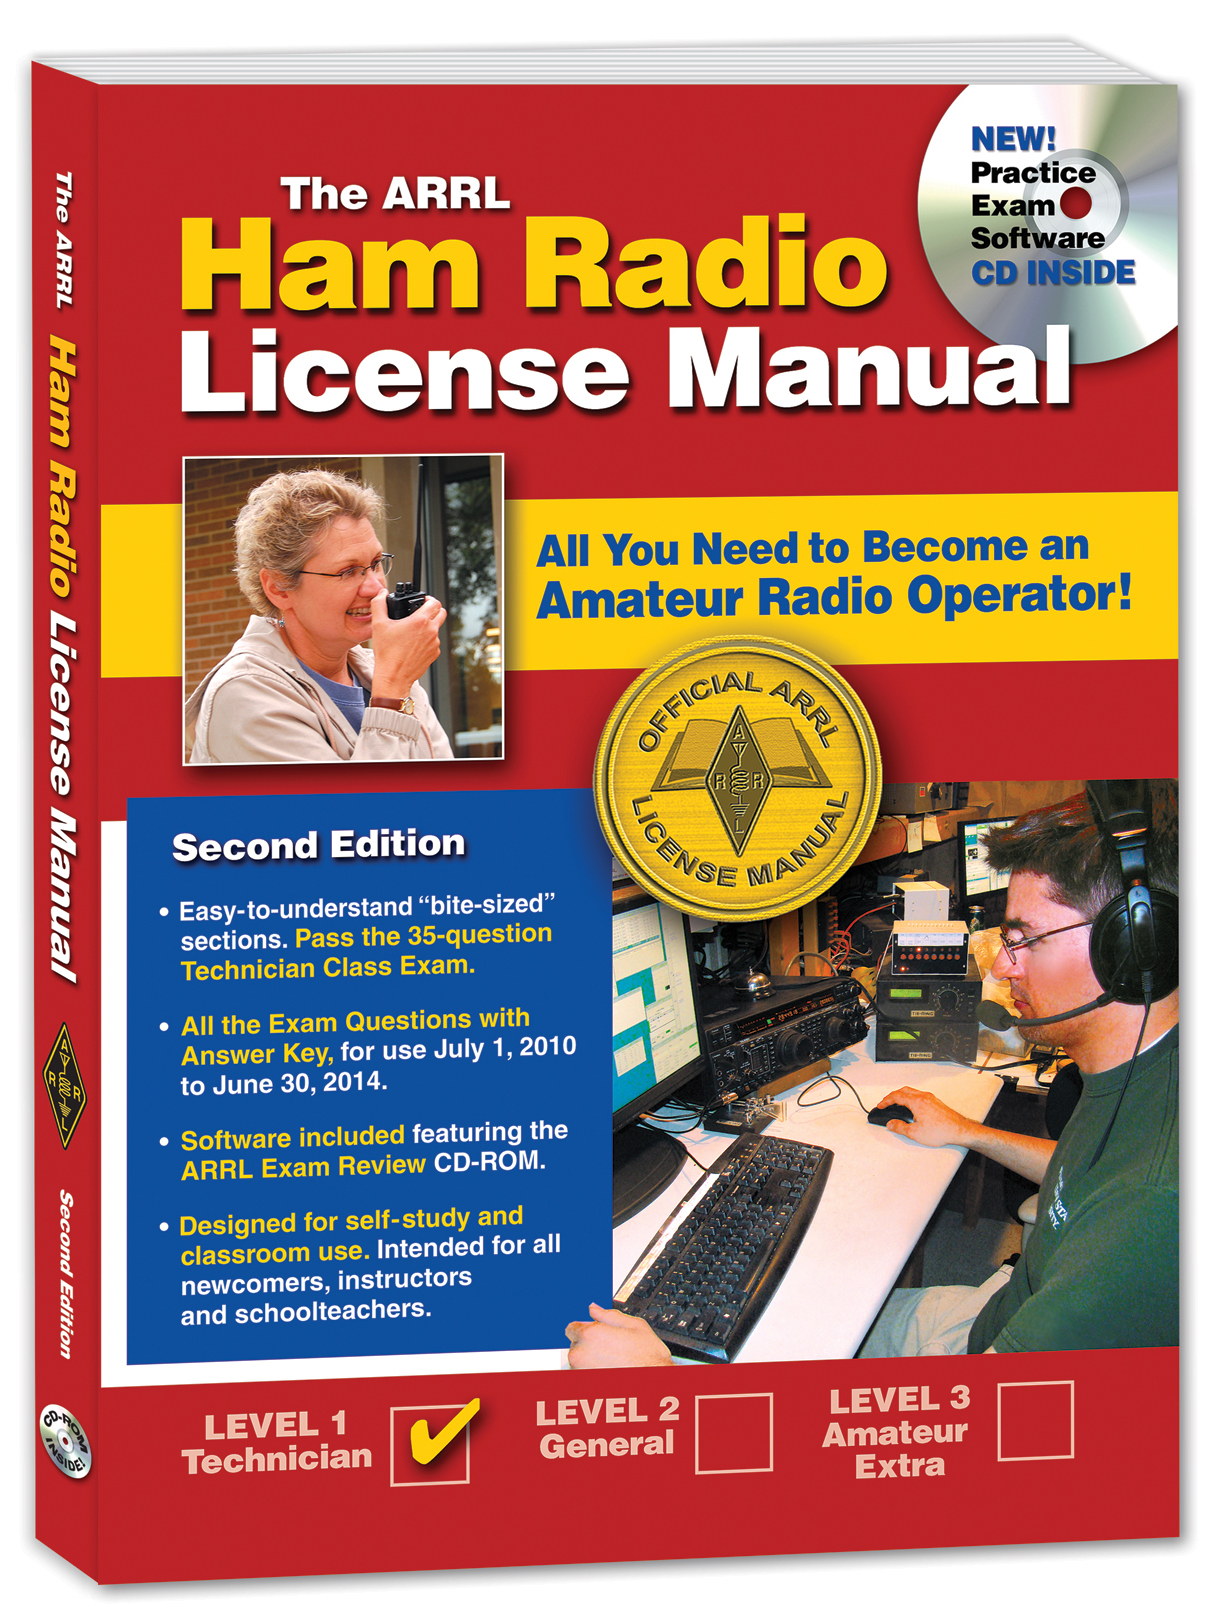 Arrl introduces exam review software for ham radio licensing the arrl ham radio license manual second edition with arrl exam review cd rom xflitez Image collections